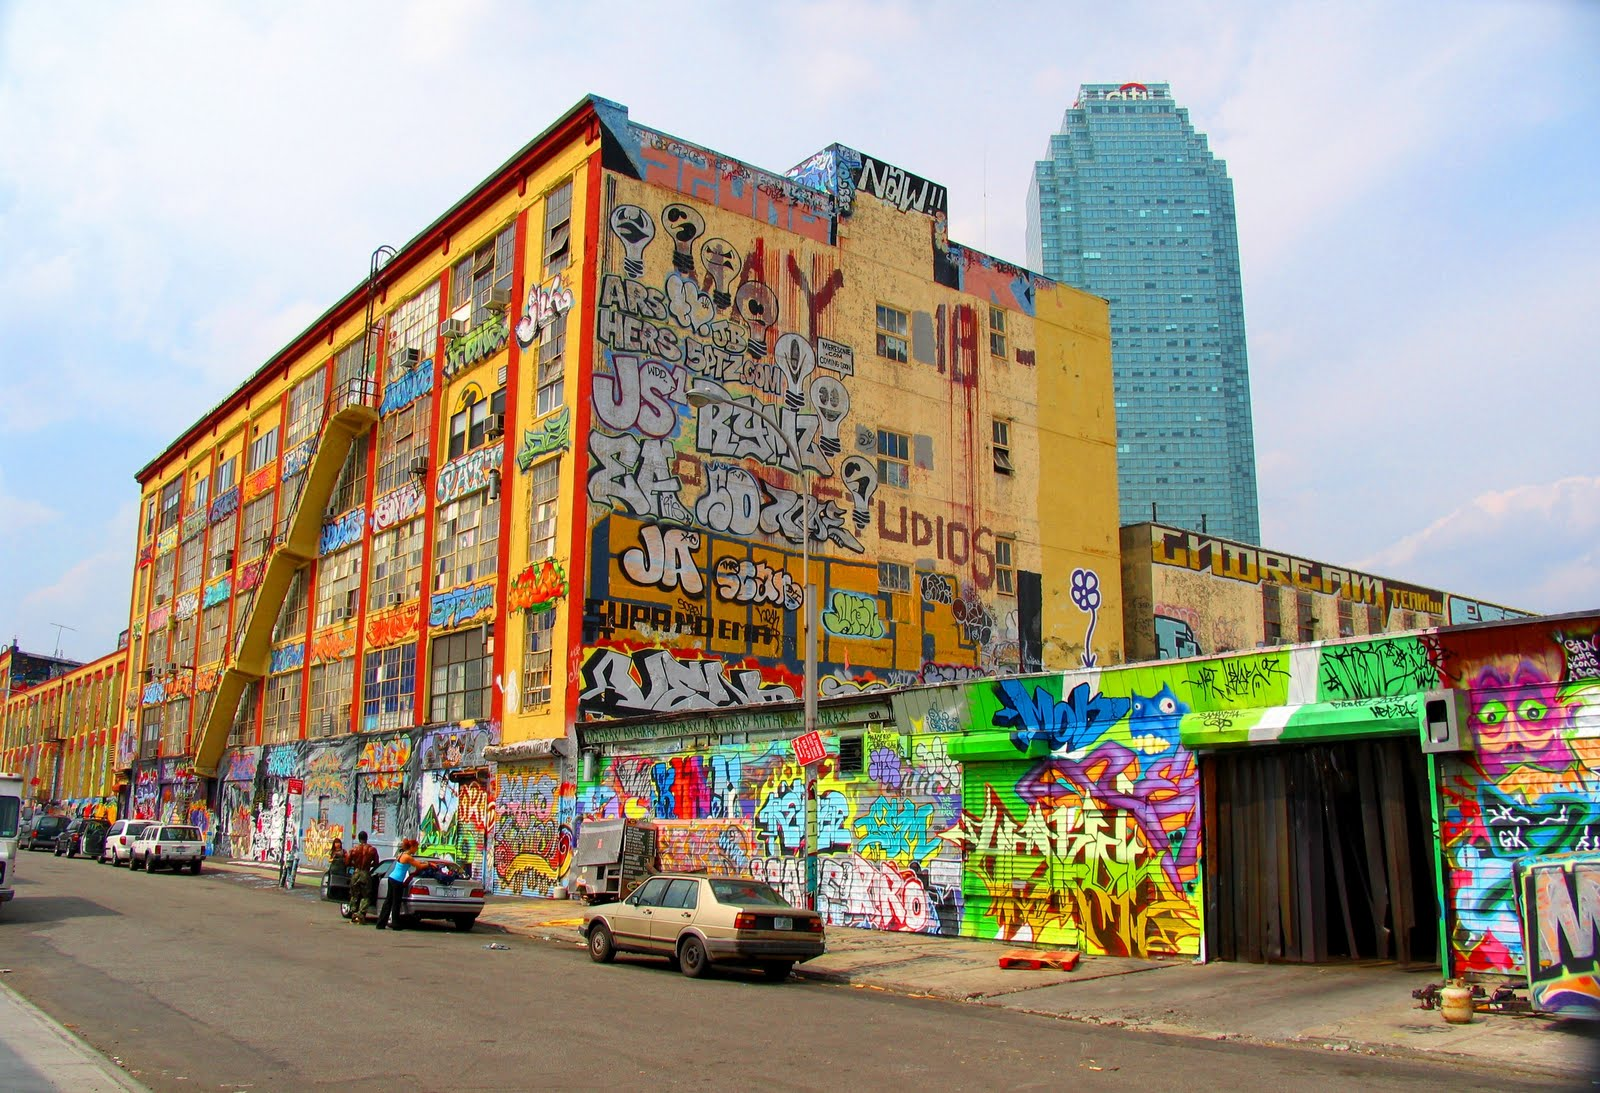 bombed up building in brooklyn ny if i ever get the chance to go